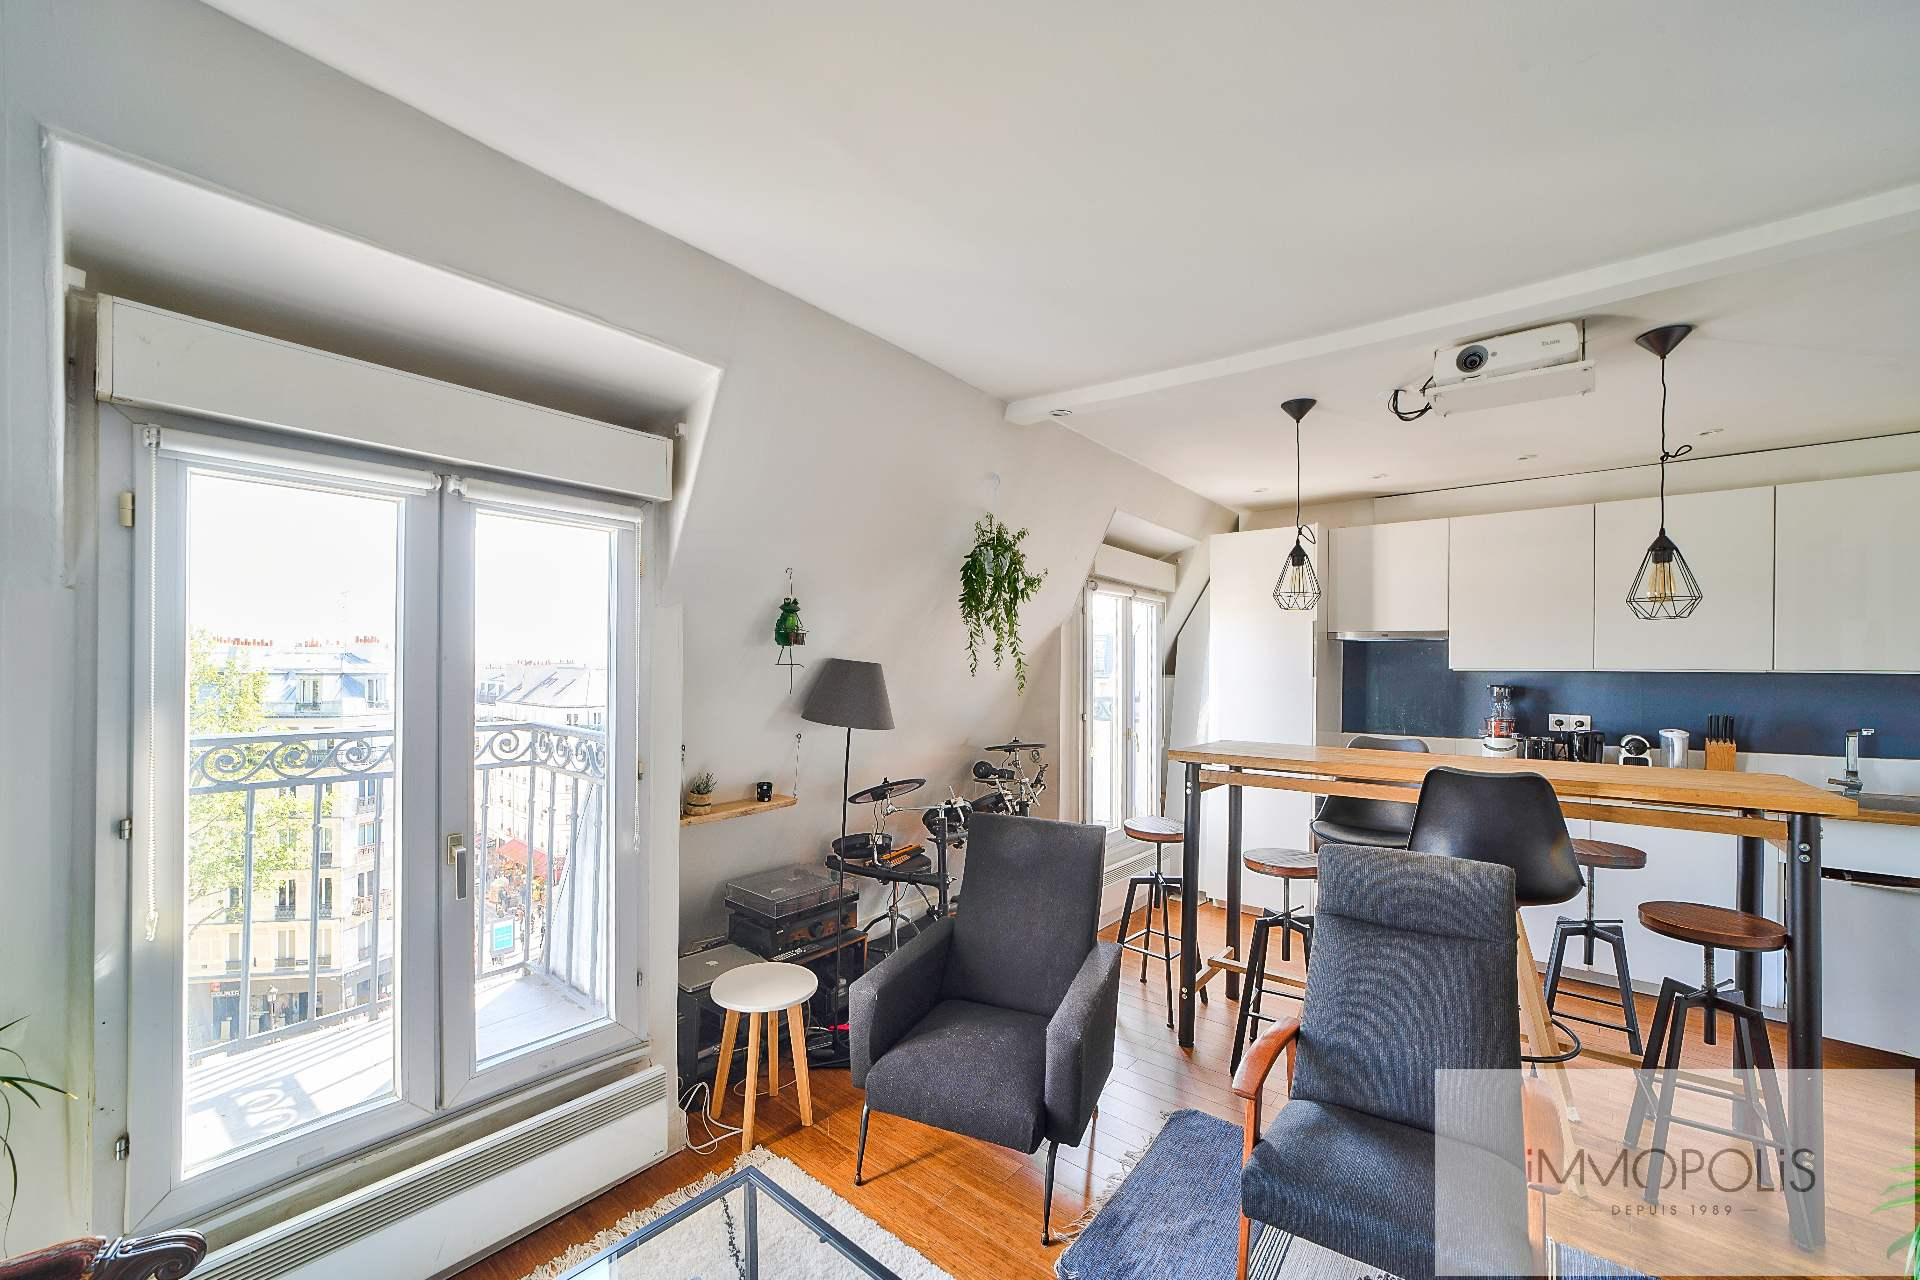 Beautiful 2 rooms in 6th and last floor not overlooked, full sun, with 2 balconies! 5